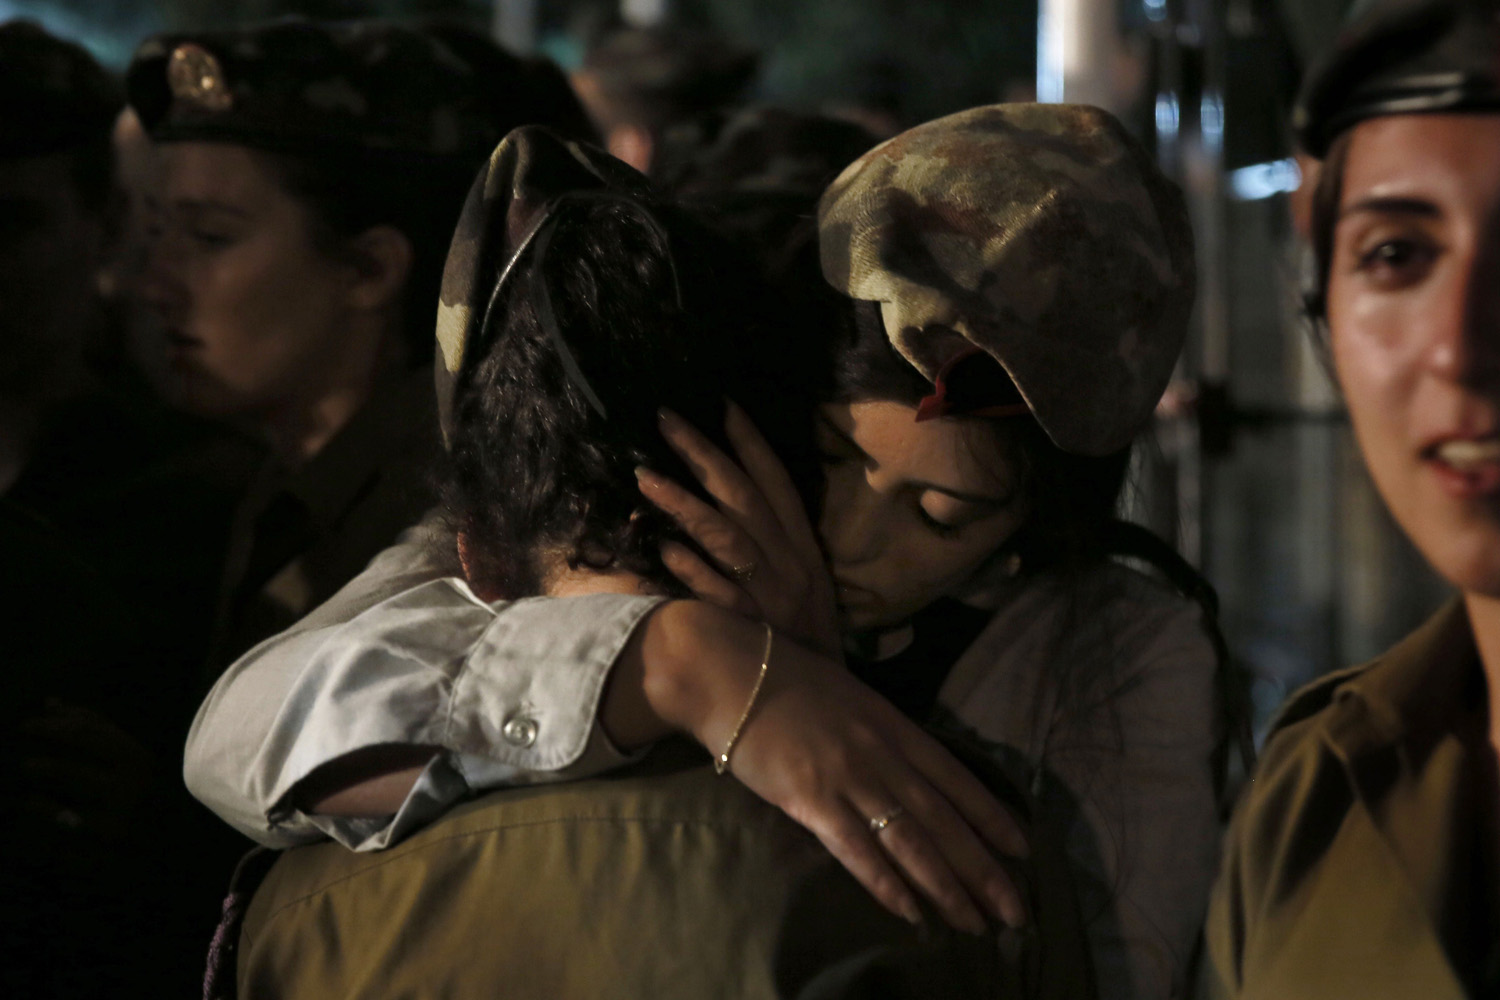 Jul. 29, 2014. Females comrades of 21-year-old Israeli Sgt. Barkey Ishai Shor, mourn during his funeral at the Mount Herzel military cemetery in Jerusalem, after he was killed the previous day in combat.